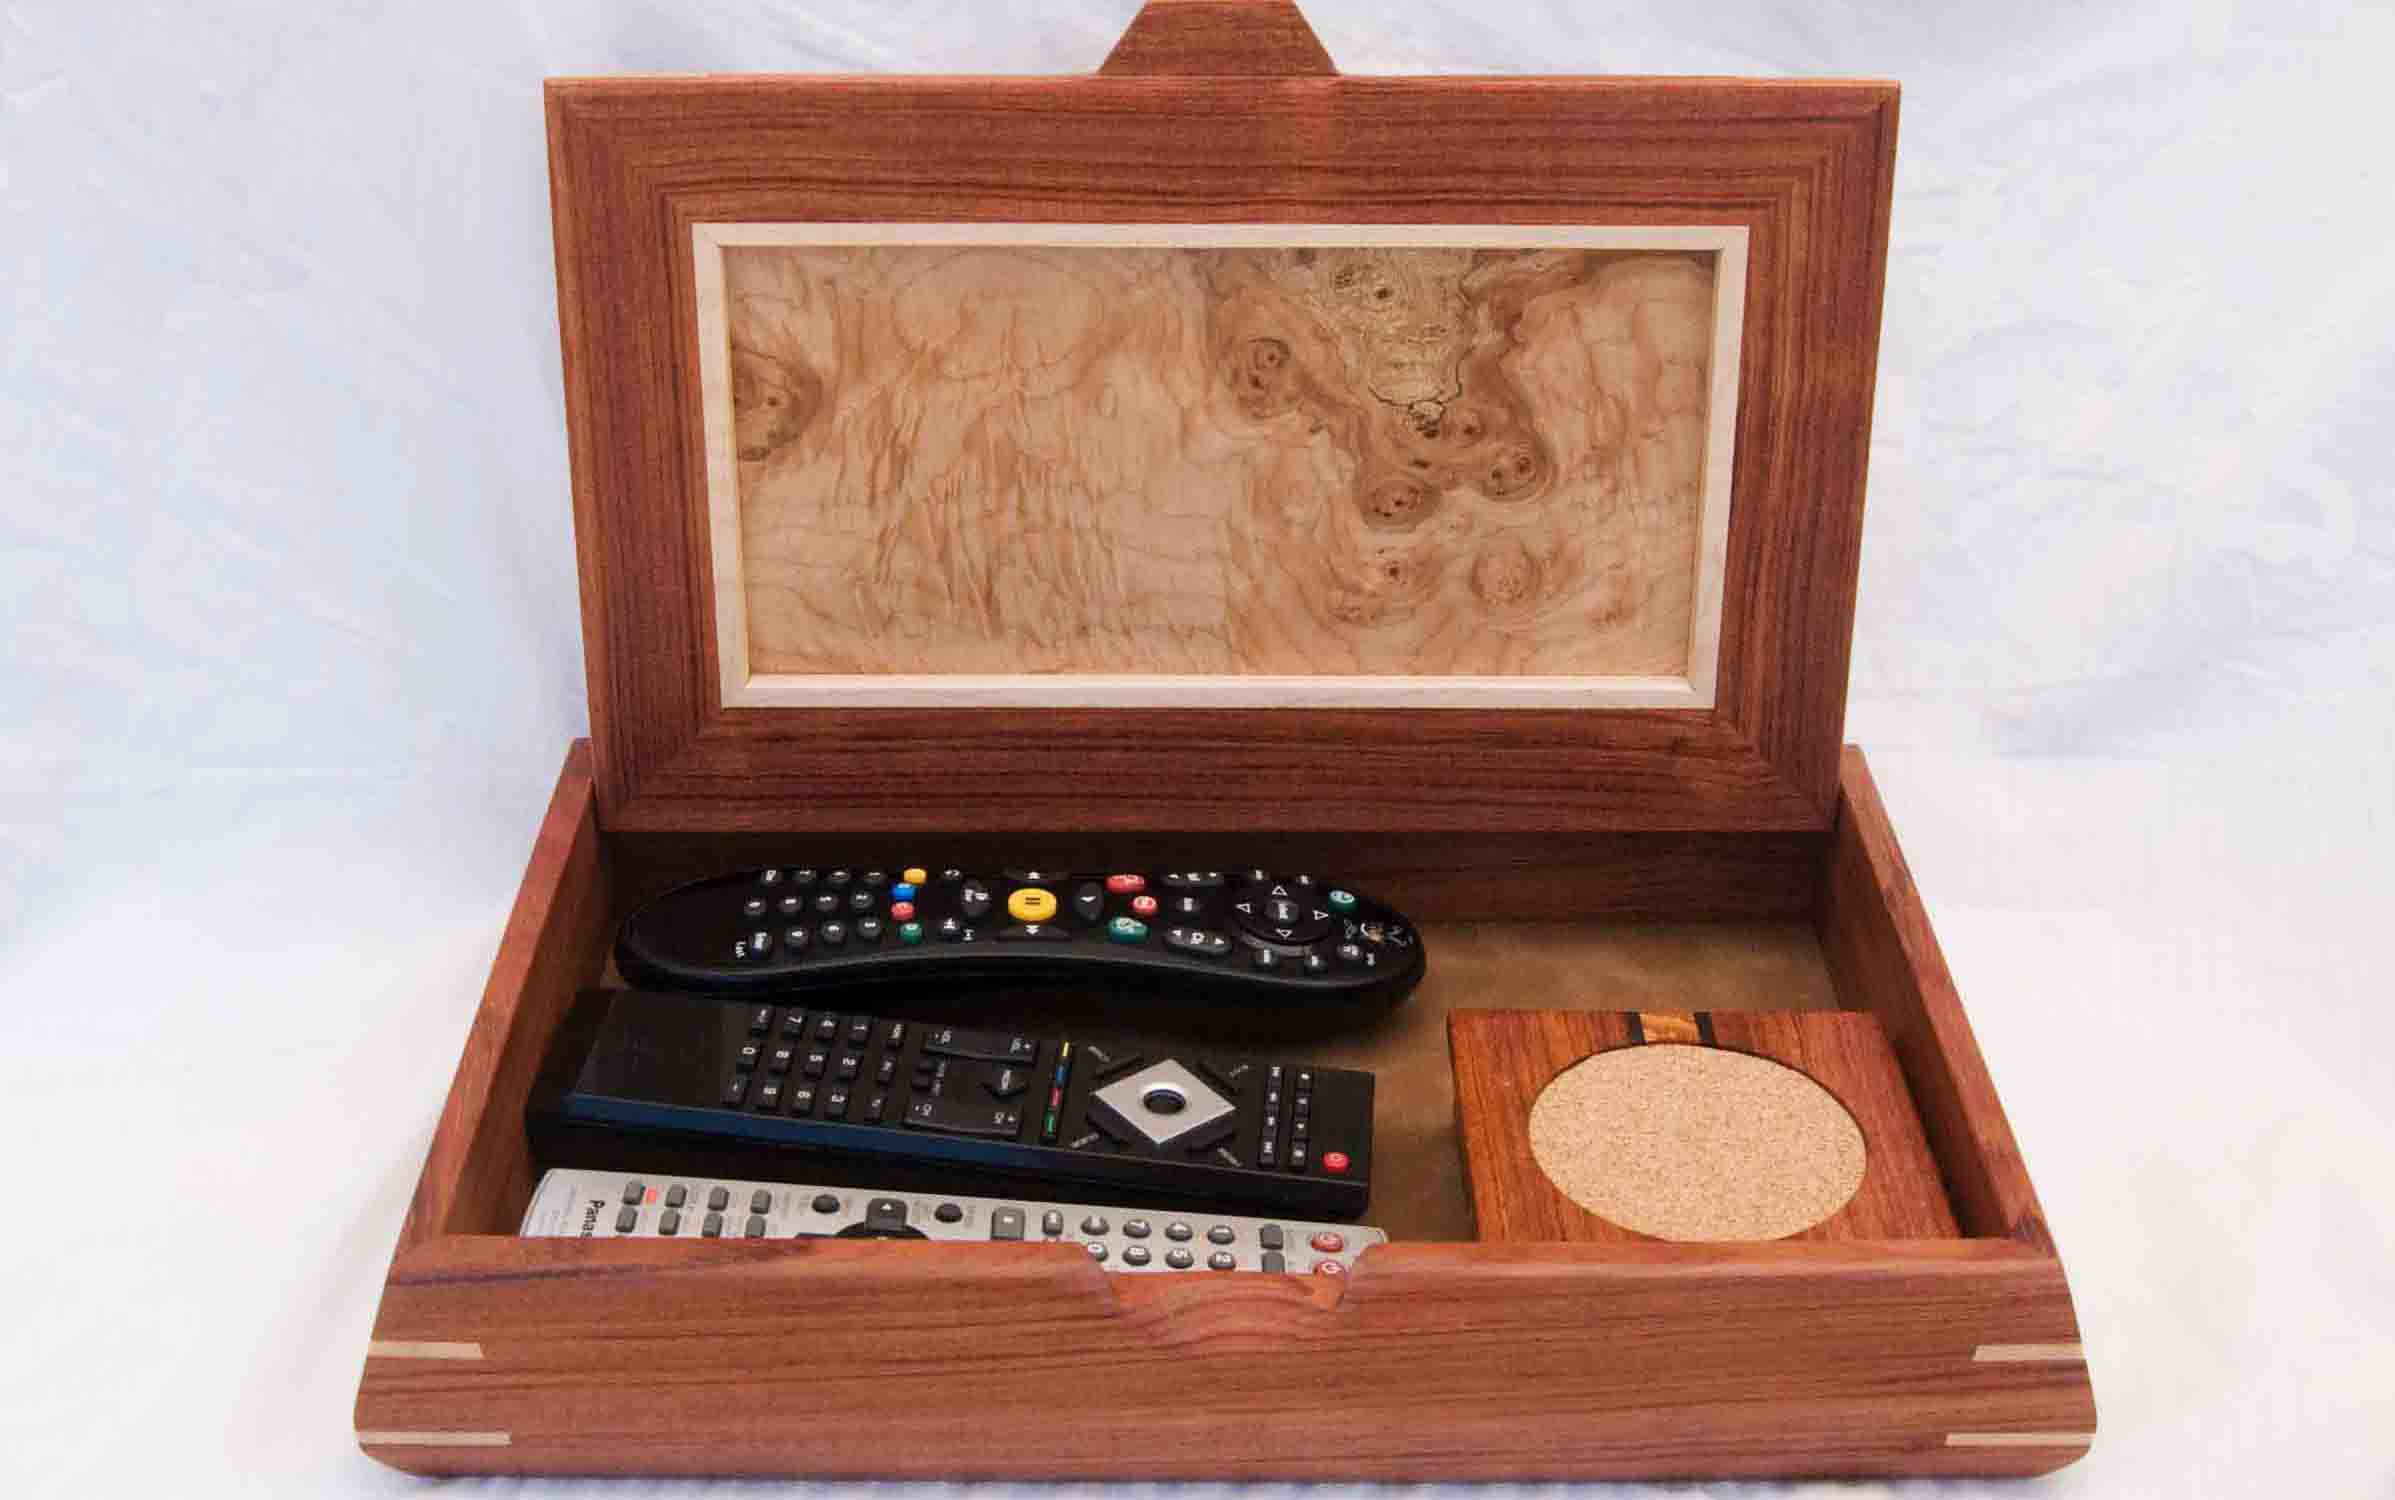 A handcrafted wooden decorative box shown holding remote controls and coasters